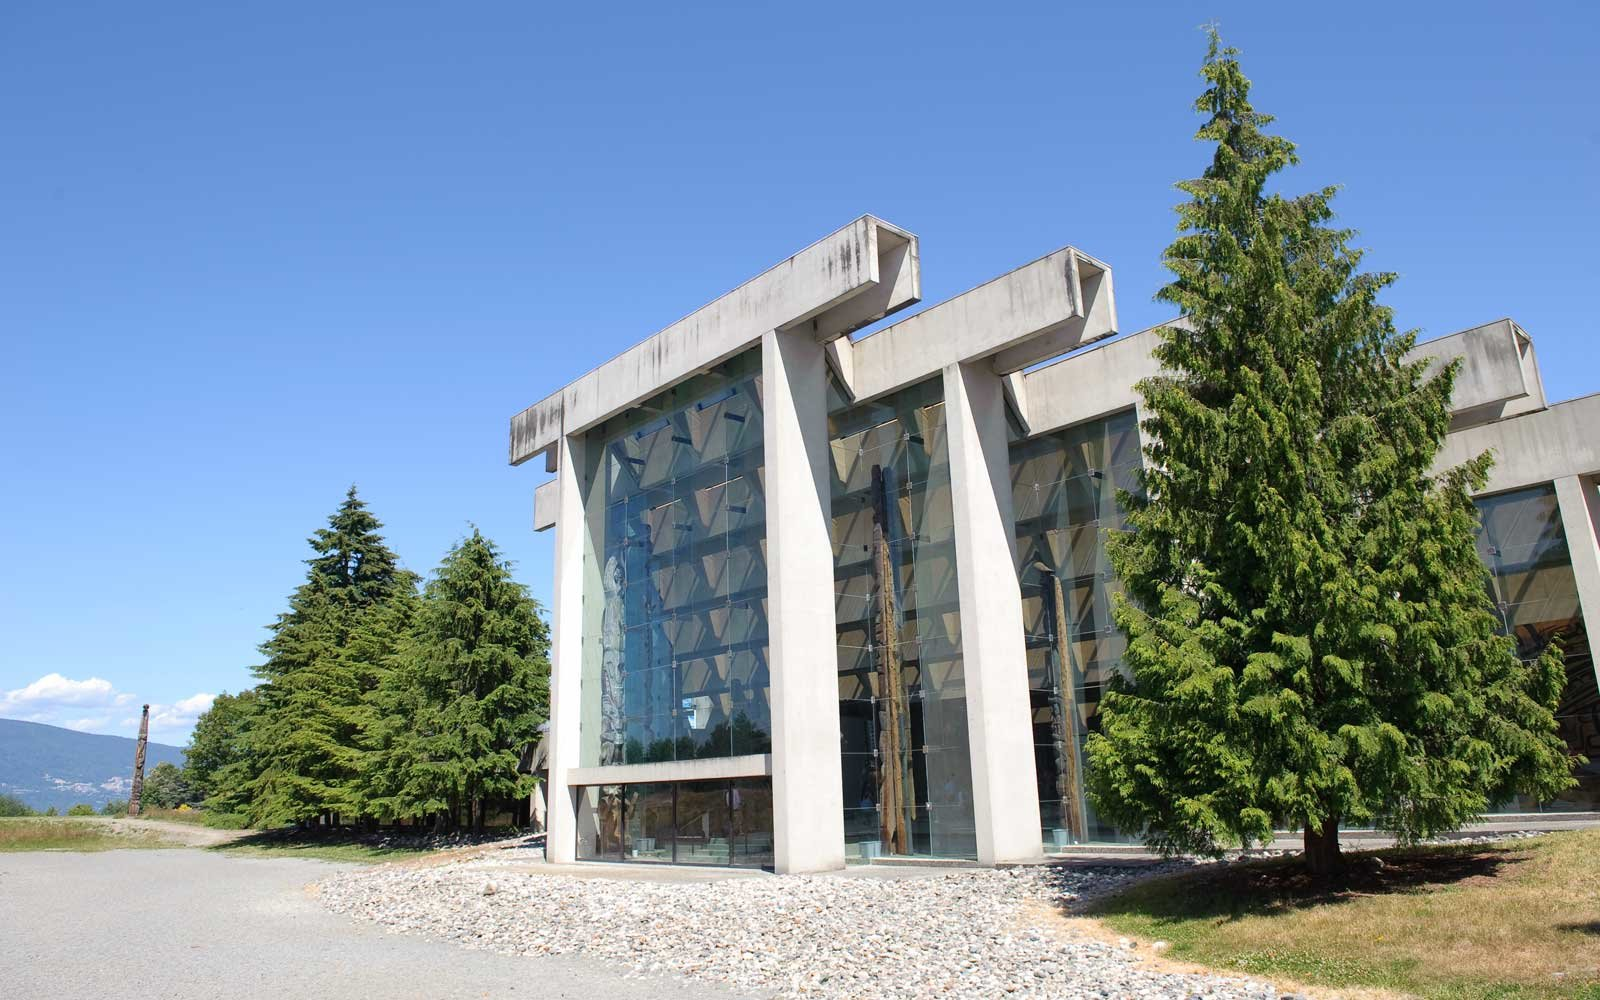 The exterior of the University of British Columbia's museum of Anthropology, designed by architect Arthur Erickson